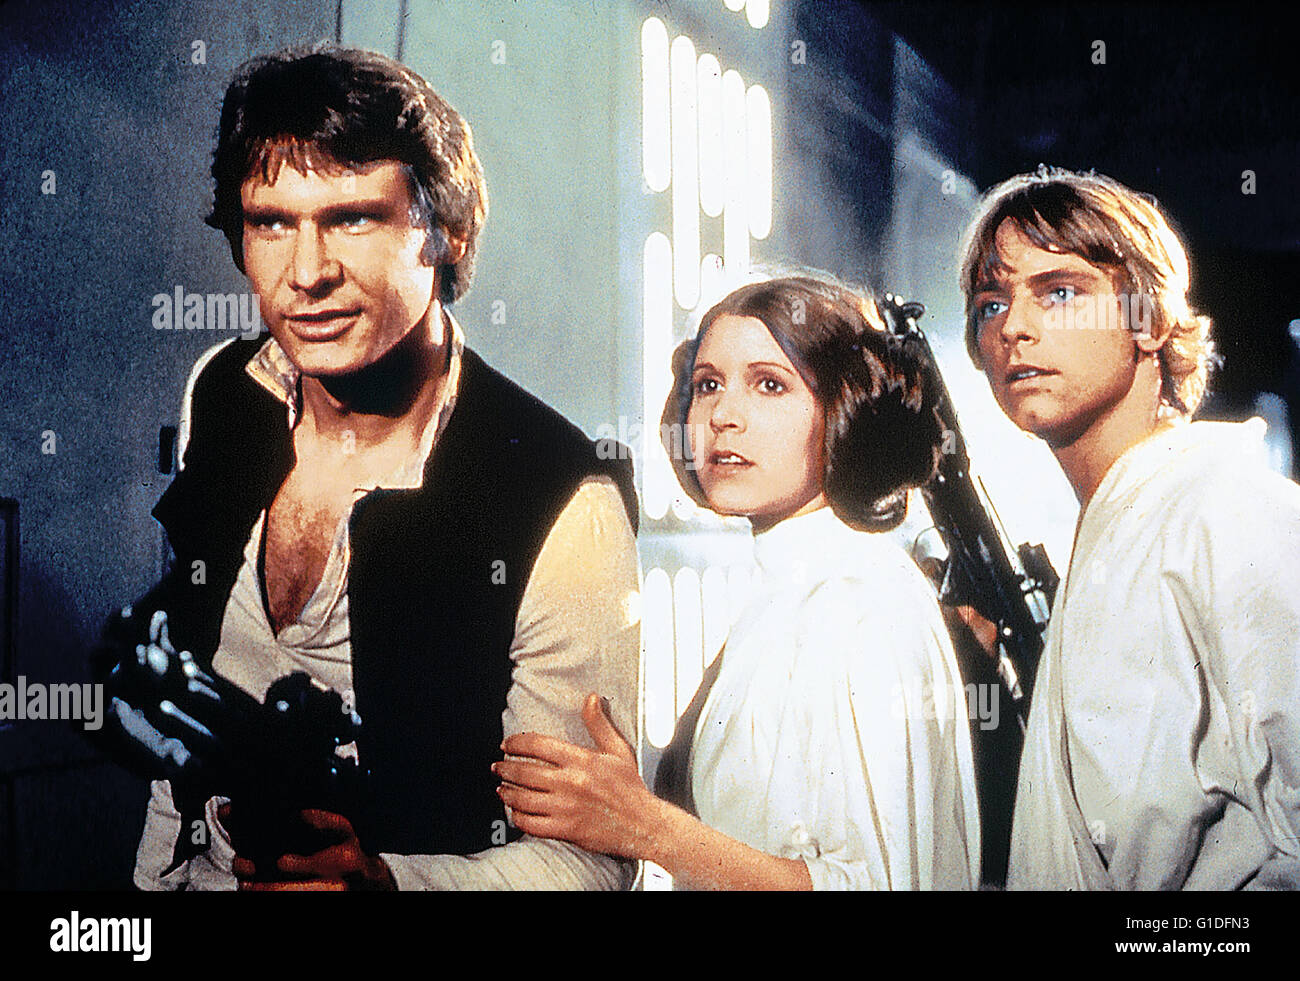 Krieg der Sterne - Special Edition / Harrison Ford / Carrie Fisher / Mark Hamill, - Stock Image